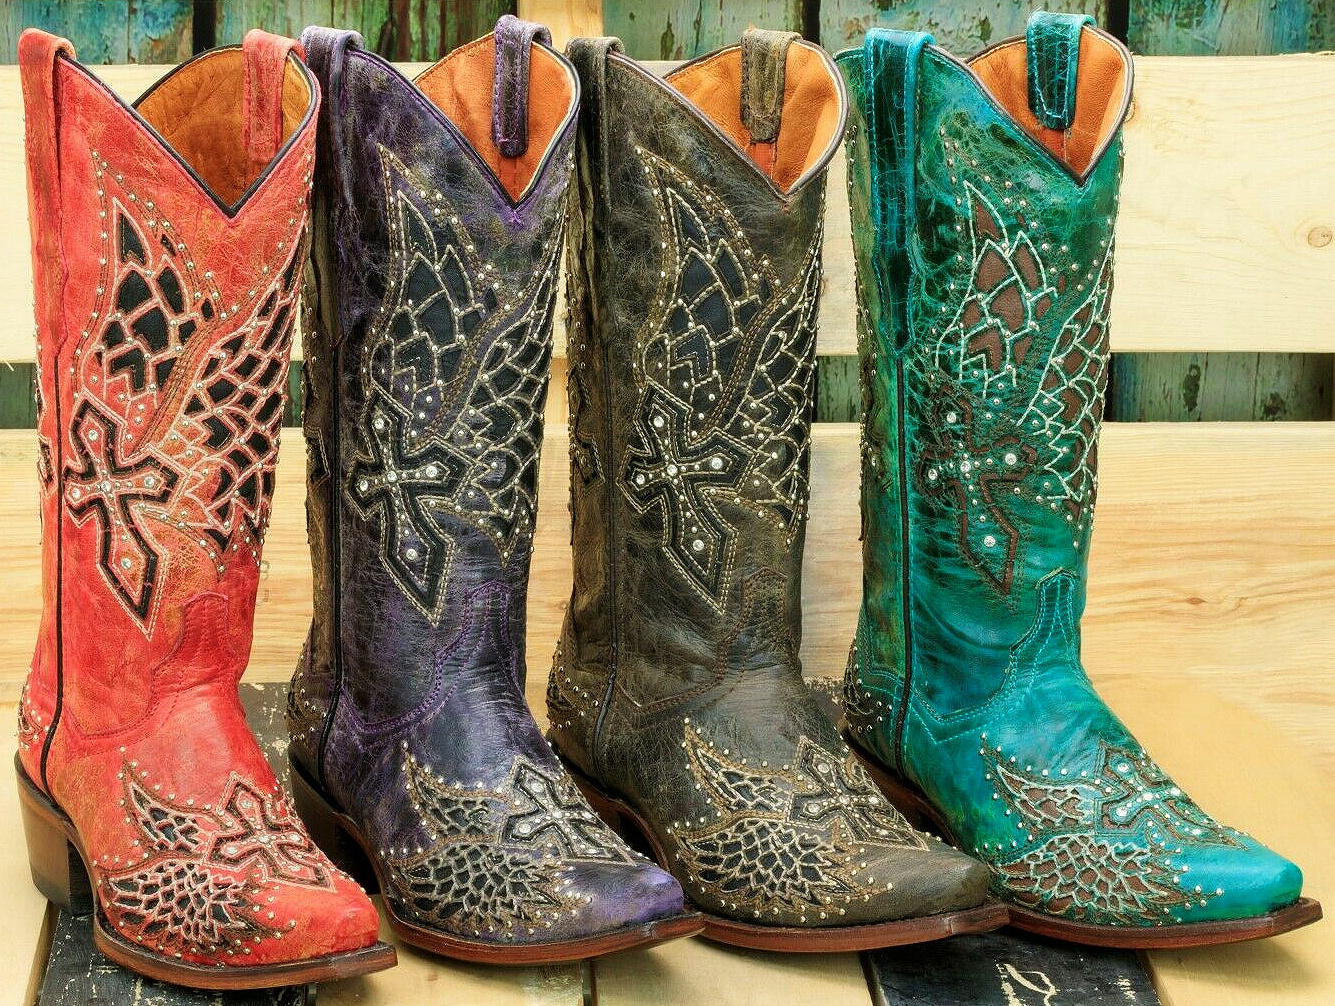 RODEO REBEL BOOTS Silver & Crystal Studded Angel Wings & Cross Rhinestone Cowgirl Boots 4COLORS Sizes 6-11